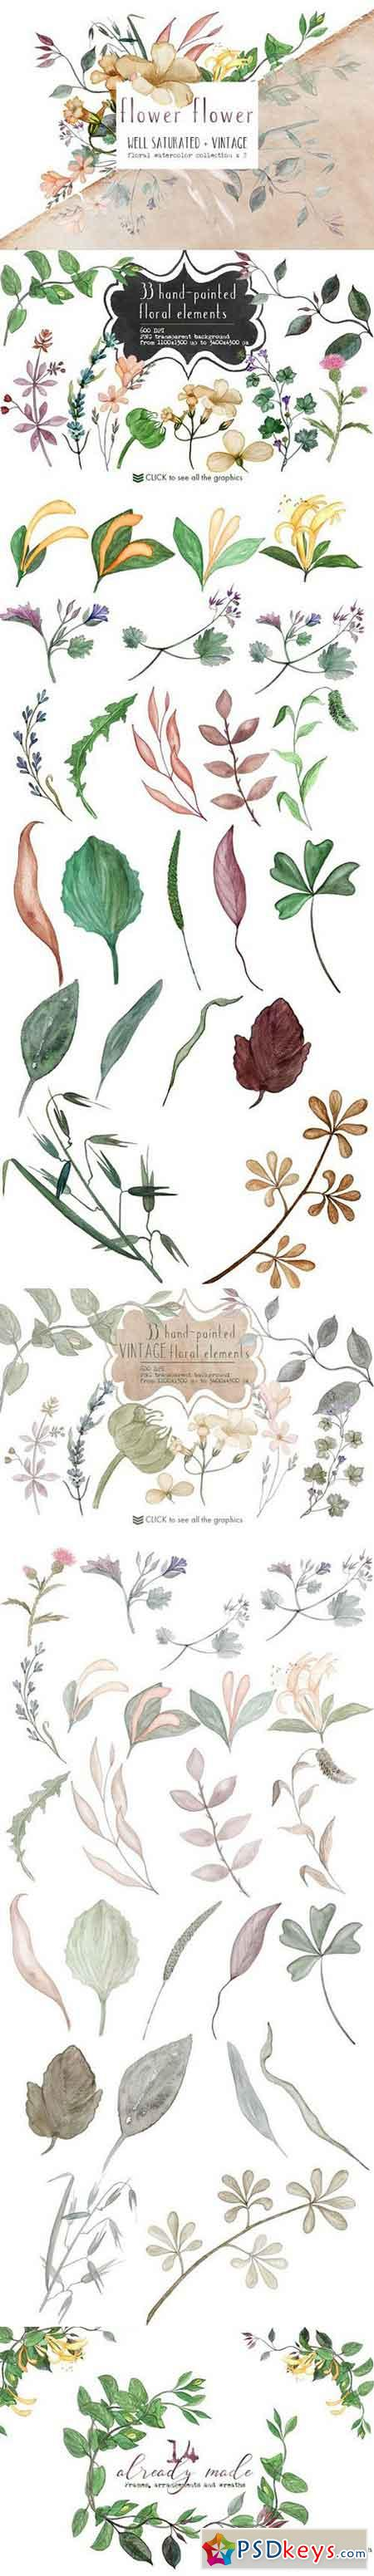 Virginia Wild - Watercolor Duo Pack 1626057